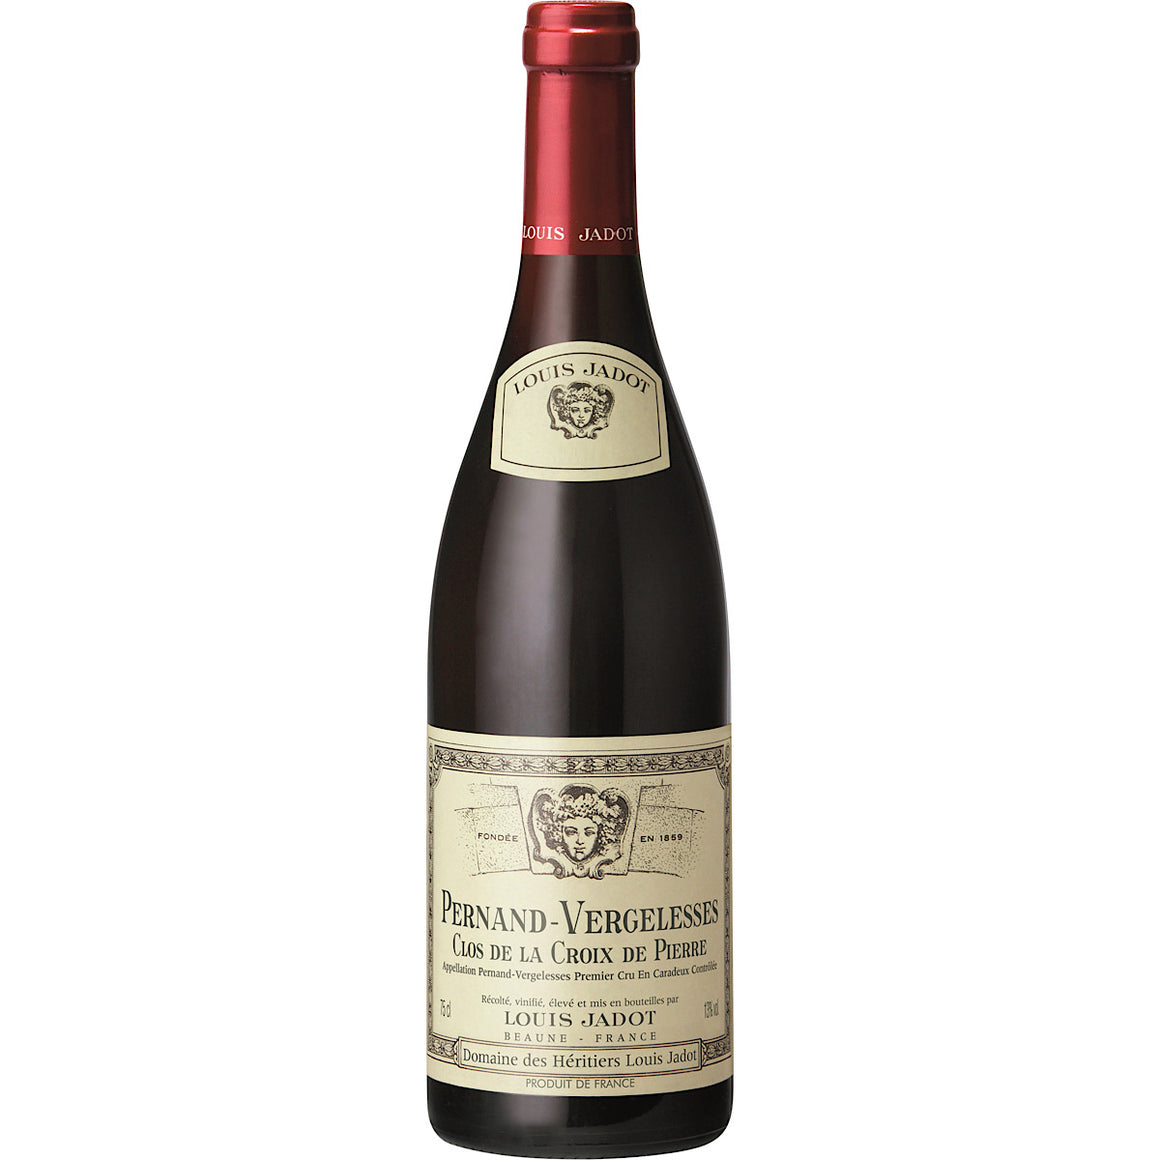 Louis Jadot Pernand Vergelesses Croix de Pierres 1er Cru 2014 6 Bottle Case